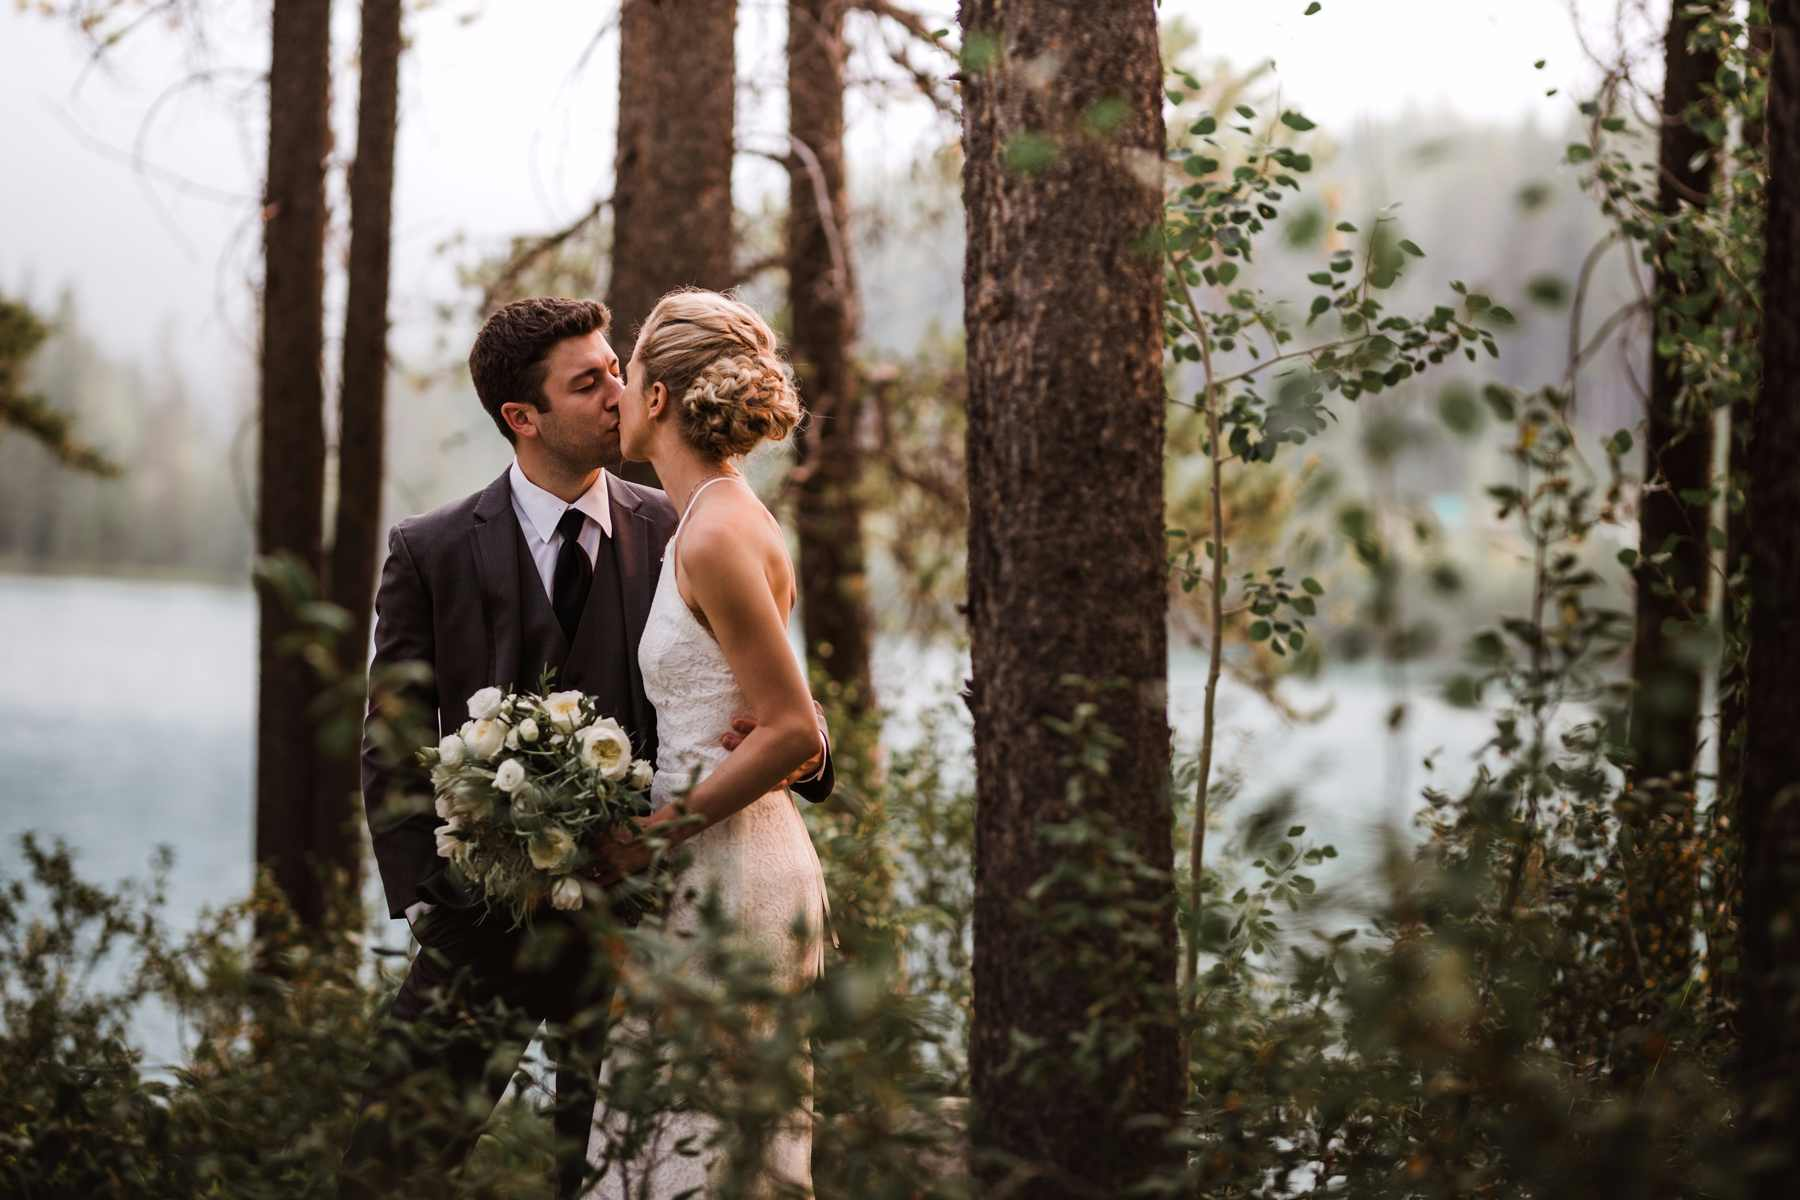 Banff Canmore Lake Louise Calgary Rocky Mountain Wedding: Film & Forest Banff Elopement Photographers